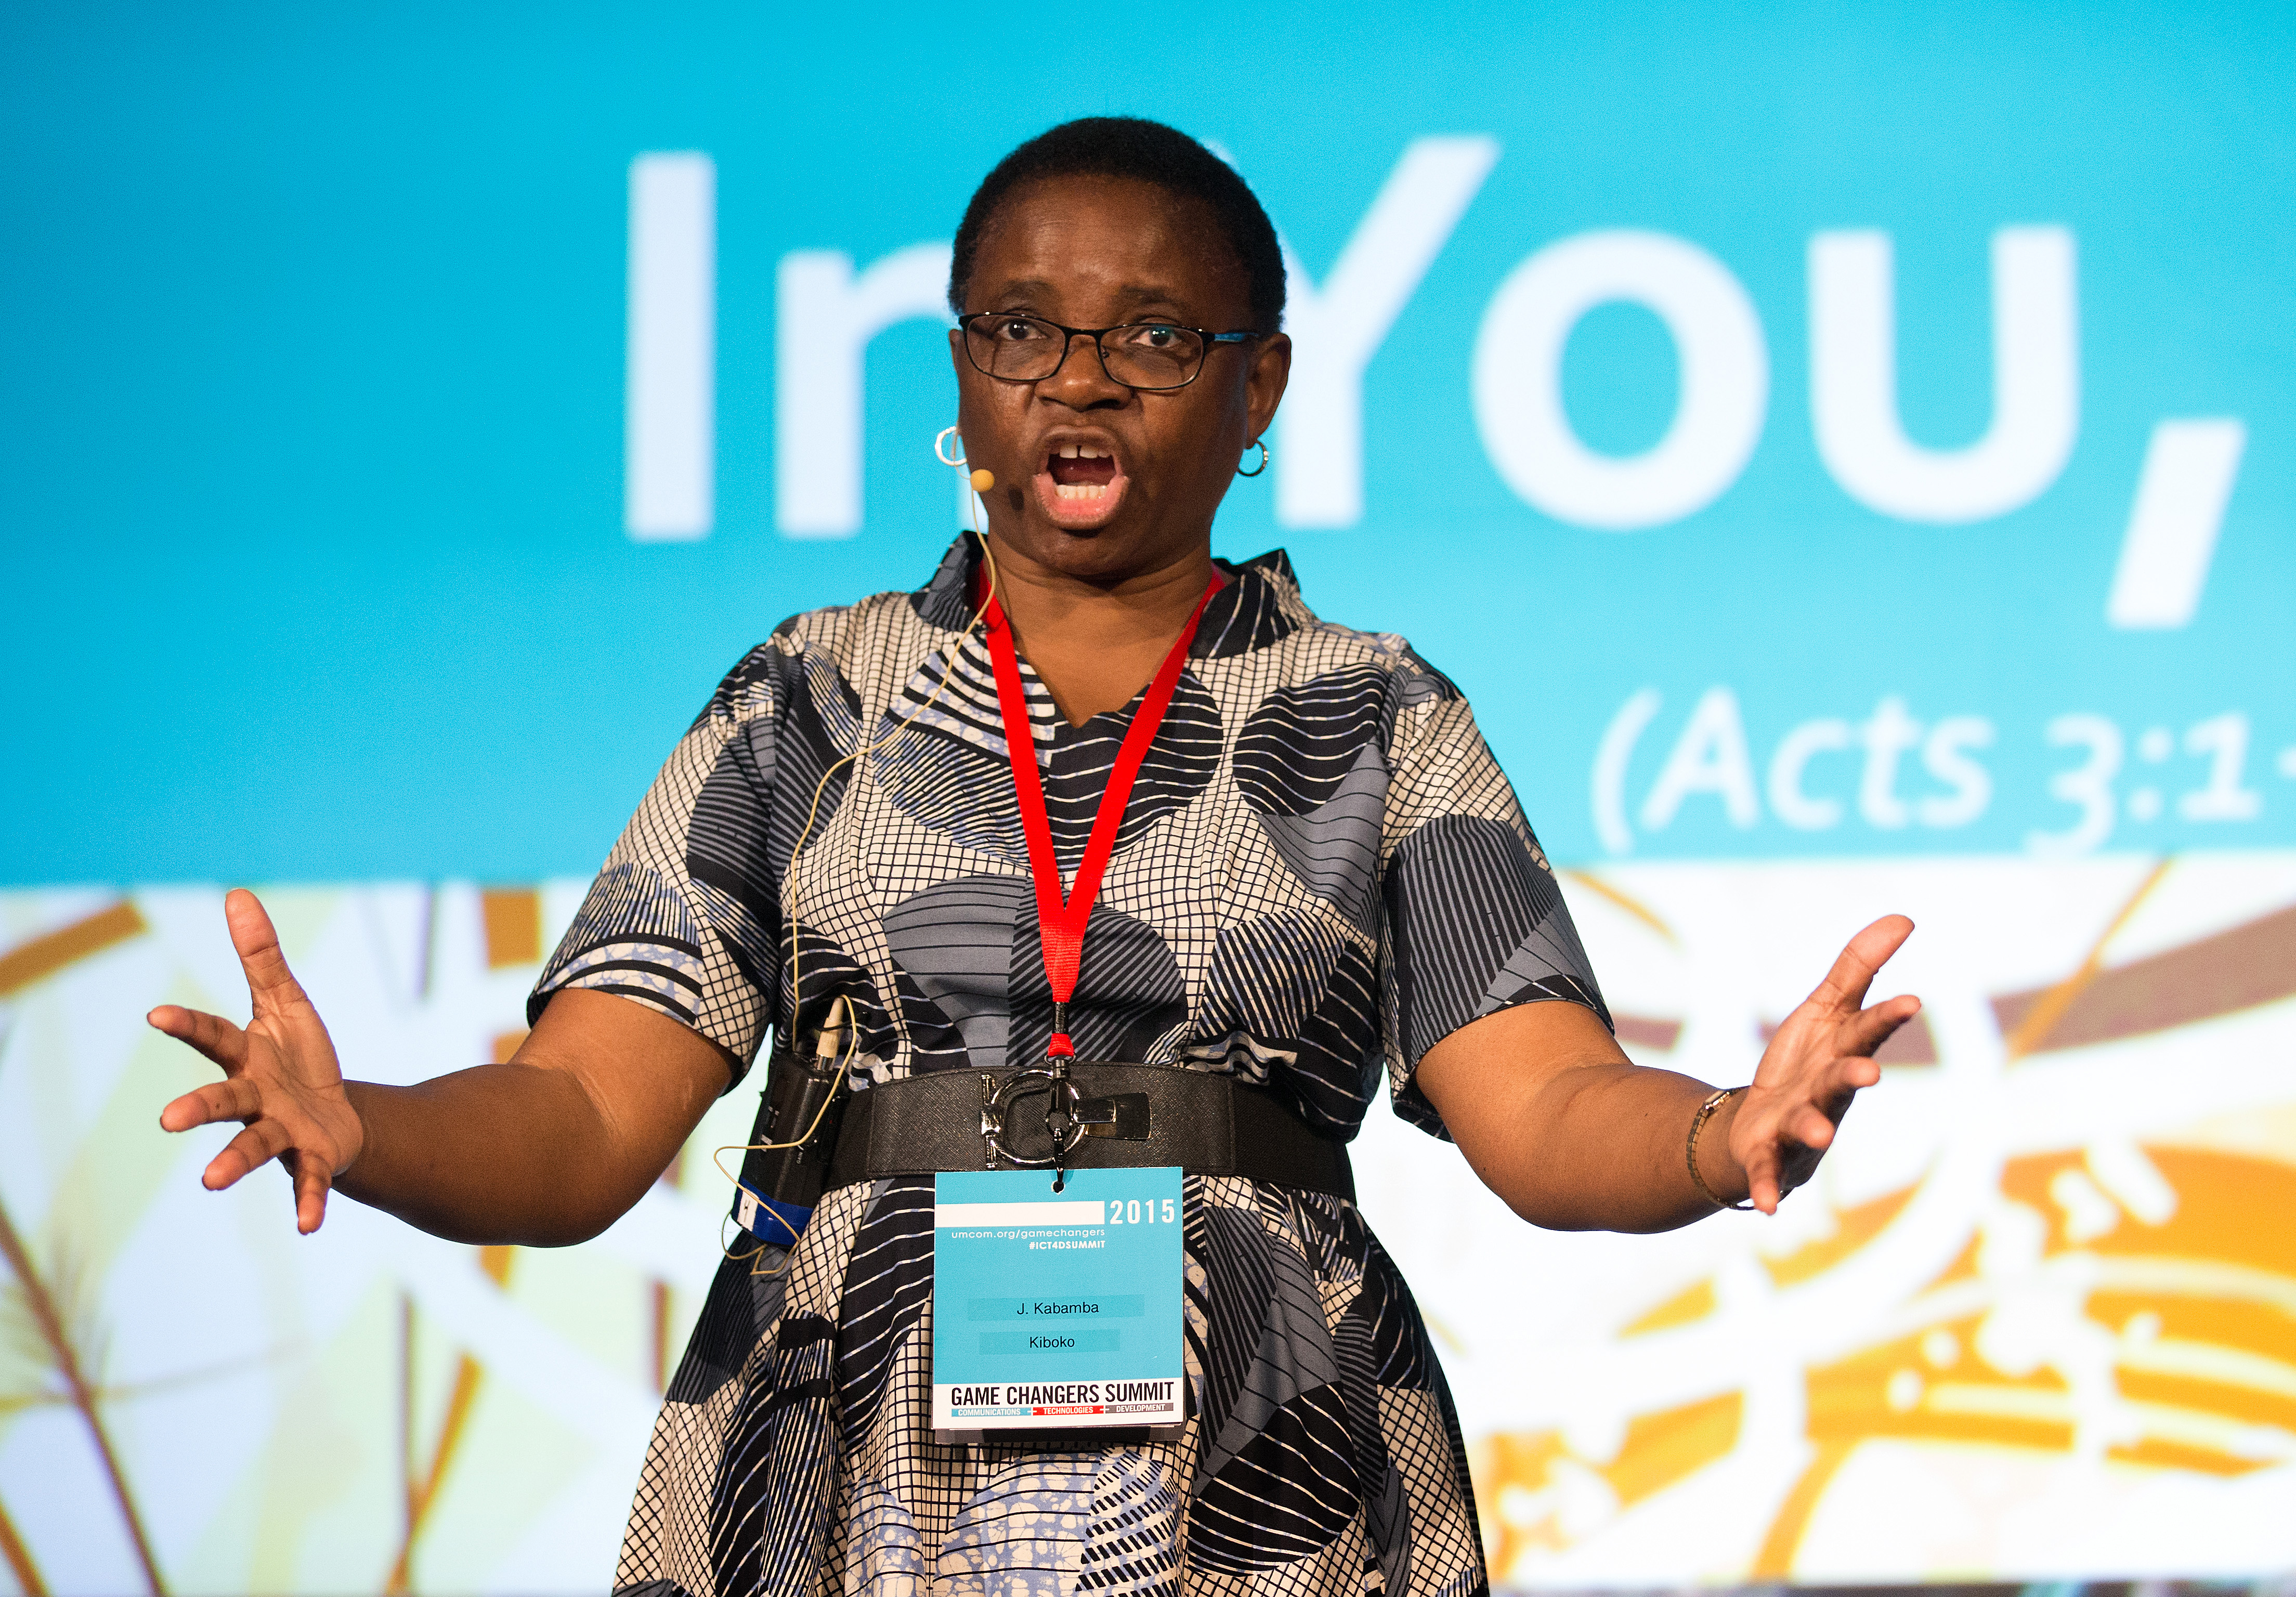 The Rev. J. Kabamba Kiboko, Vano Kiboko's sister, gives the sermon during morning worship at the United Methodist Communications Game Changers Summit in Nashville, Tenn. Photo by Mike DuBose, UMNS